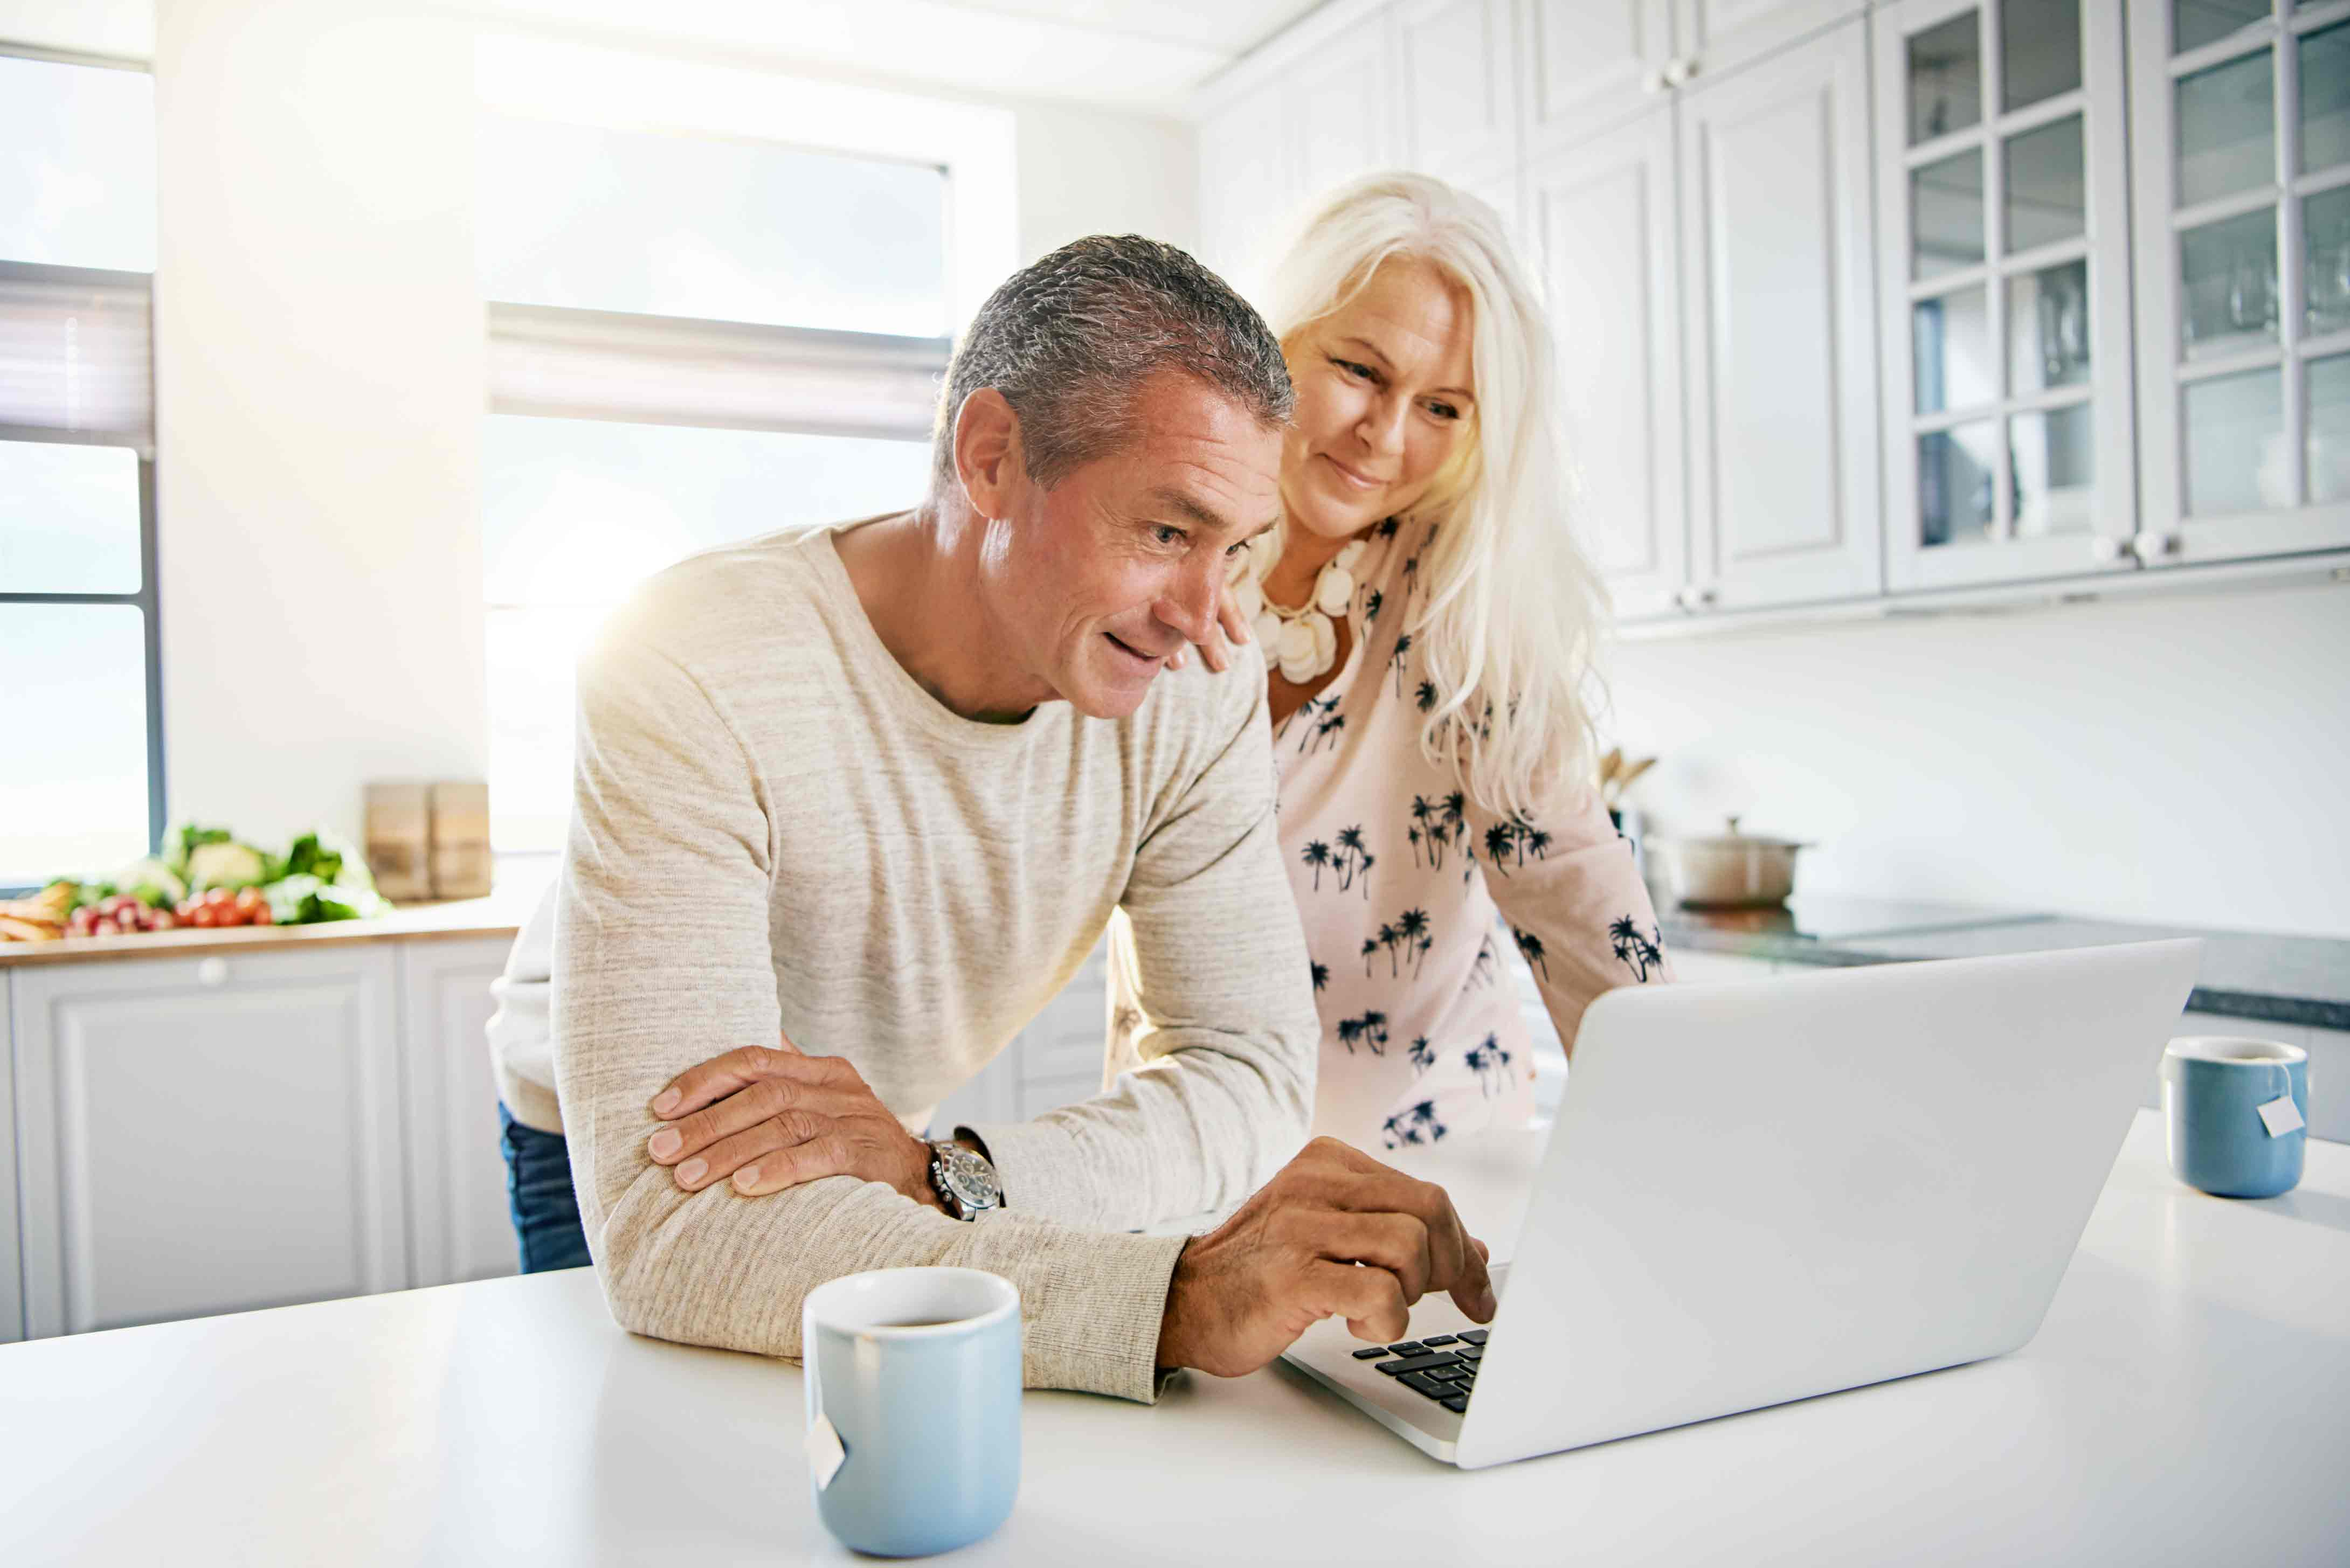 habits-that-help-you-to-early-retirement